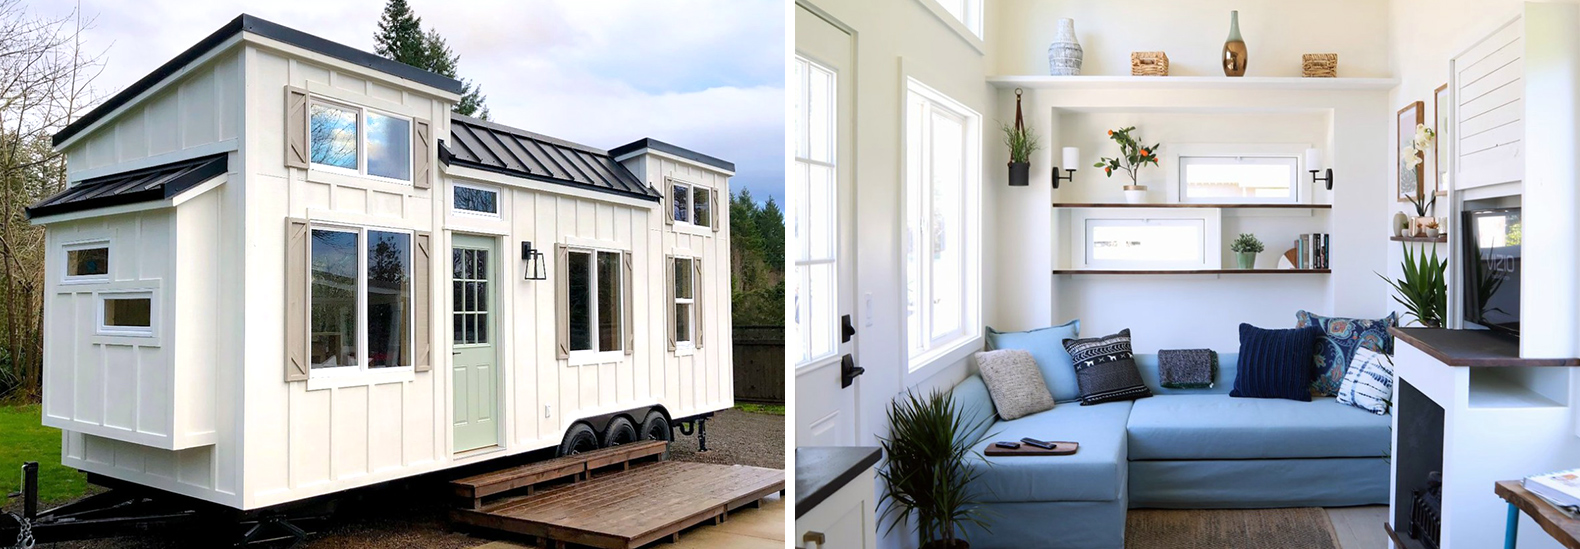 This Custom Built Tiny House Is Big On Interior Design